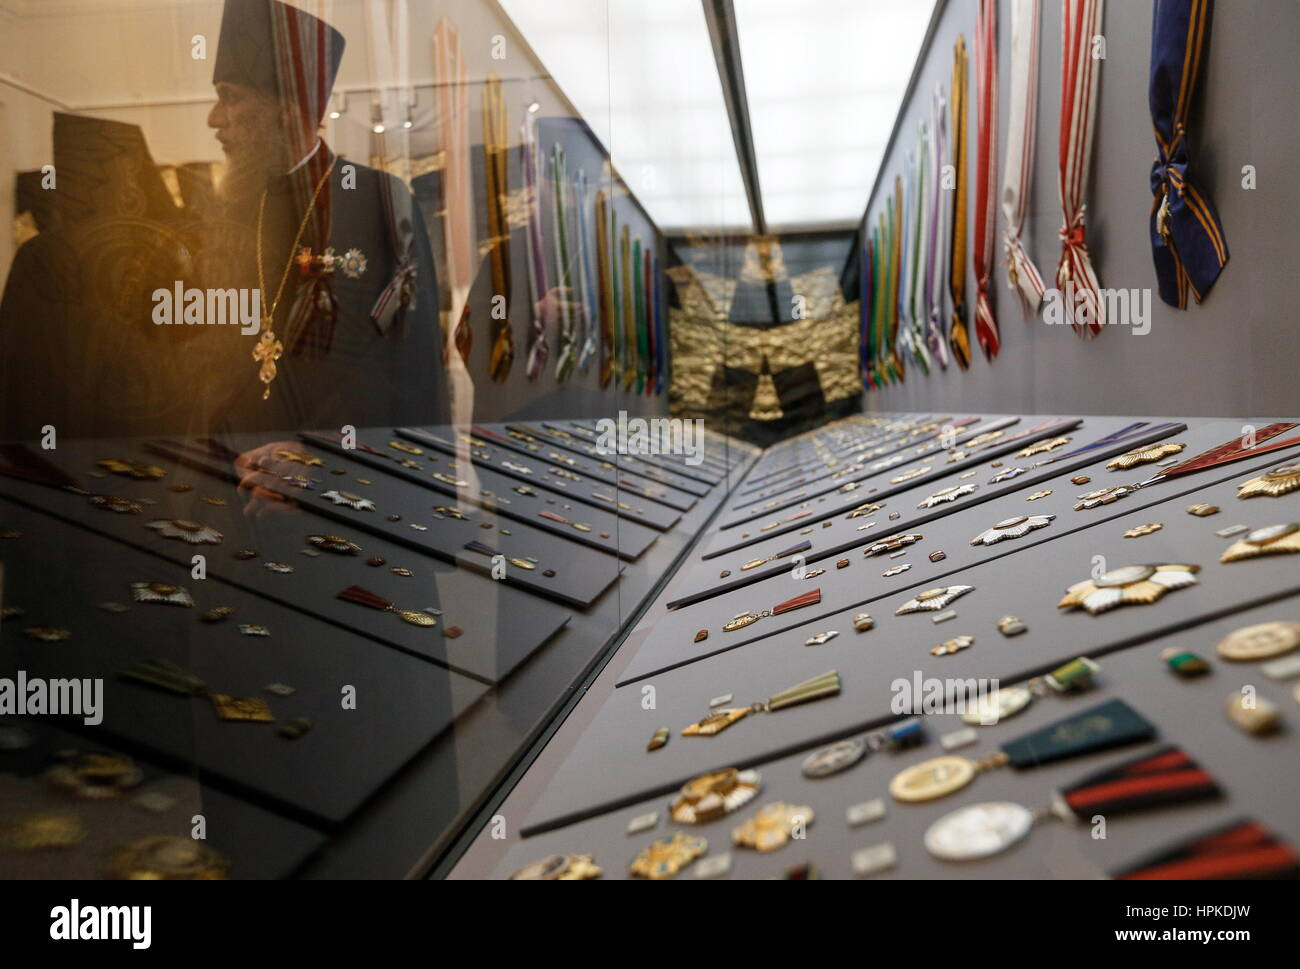 MOSCOW, RUSSIA - FEBRUARY 23, 2017: Showpieces on display at the opening of an exhibition of the Russian Orthodox - Stock Image